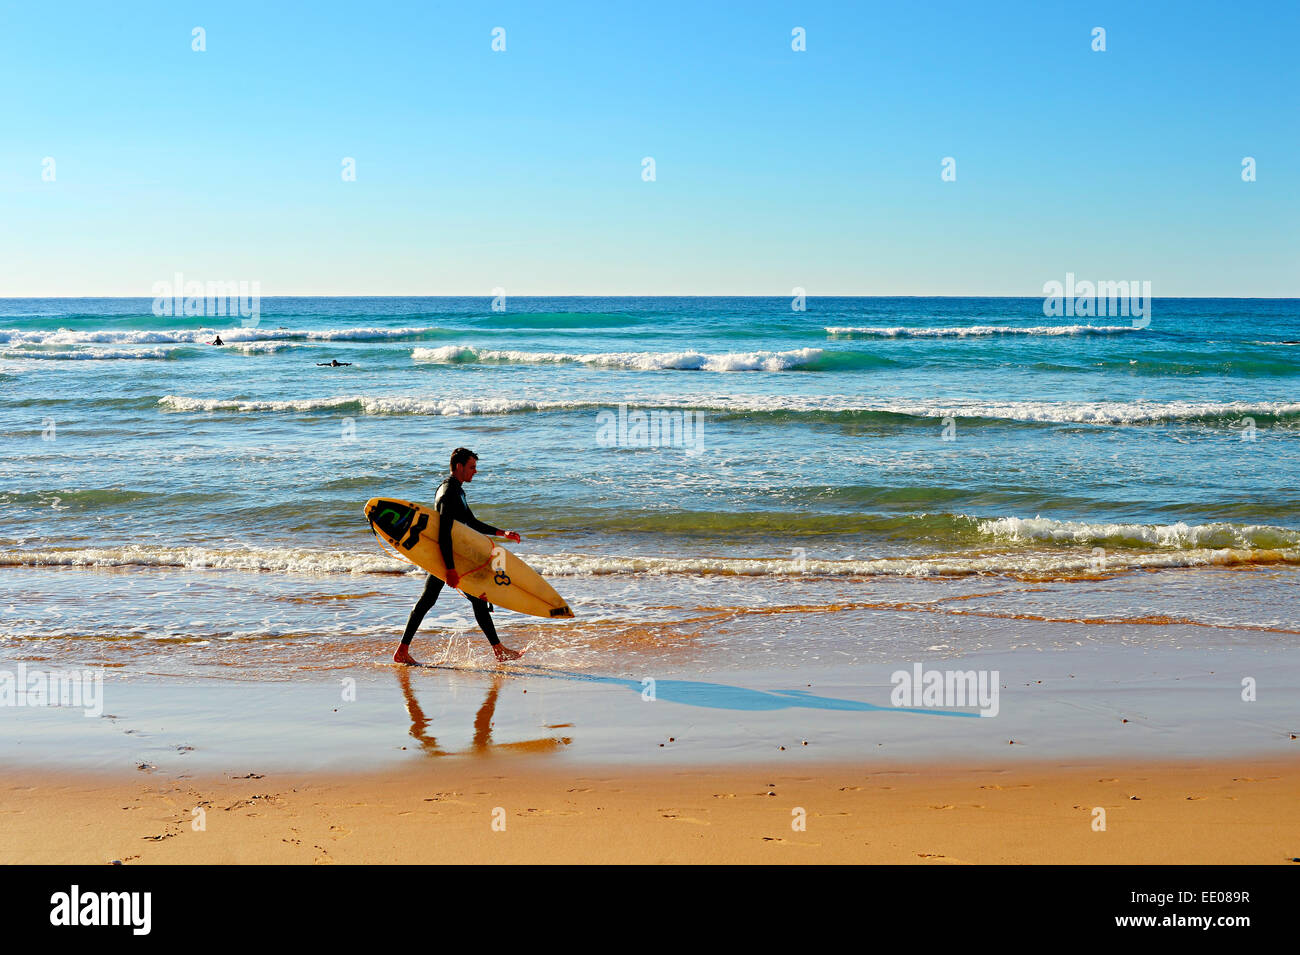 Unidentified surfer walking on the beach. Stock Photo